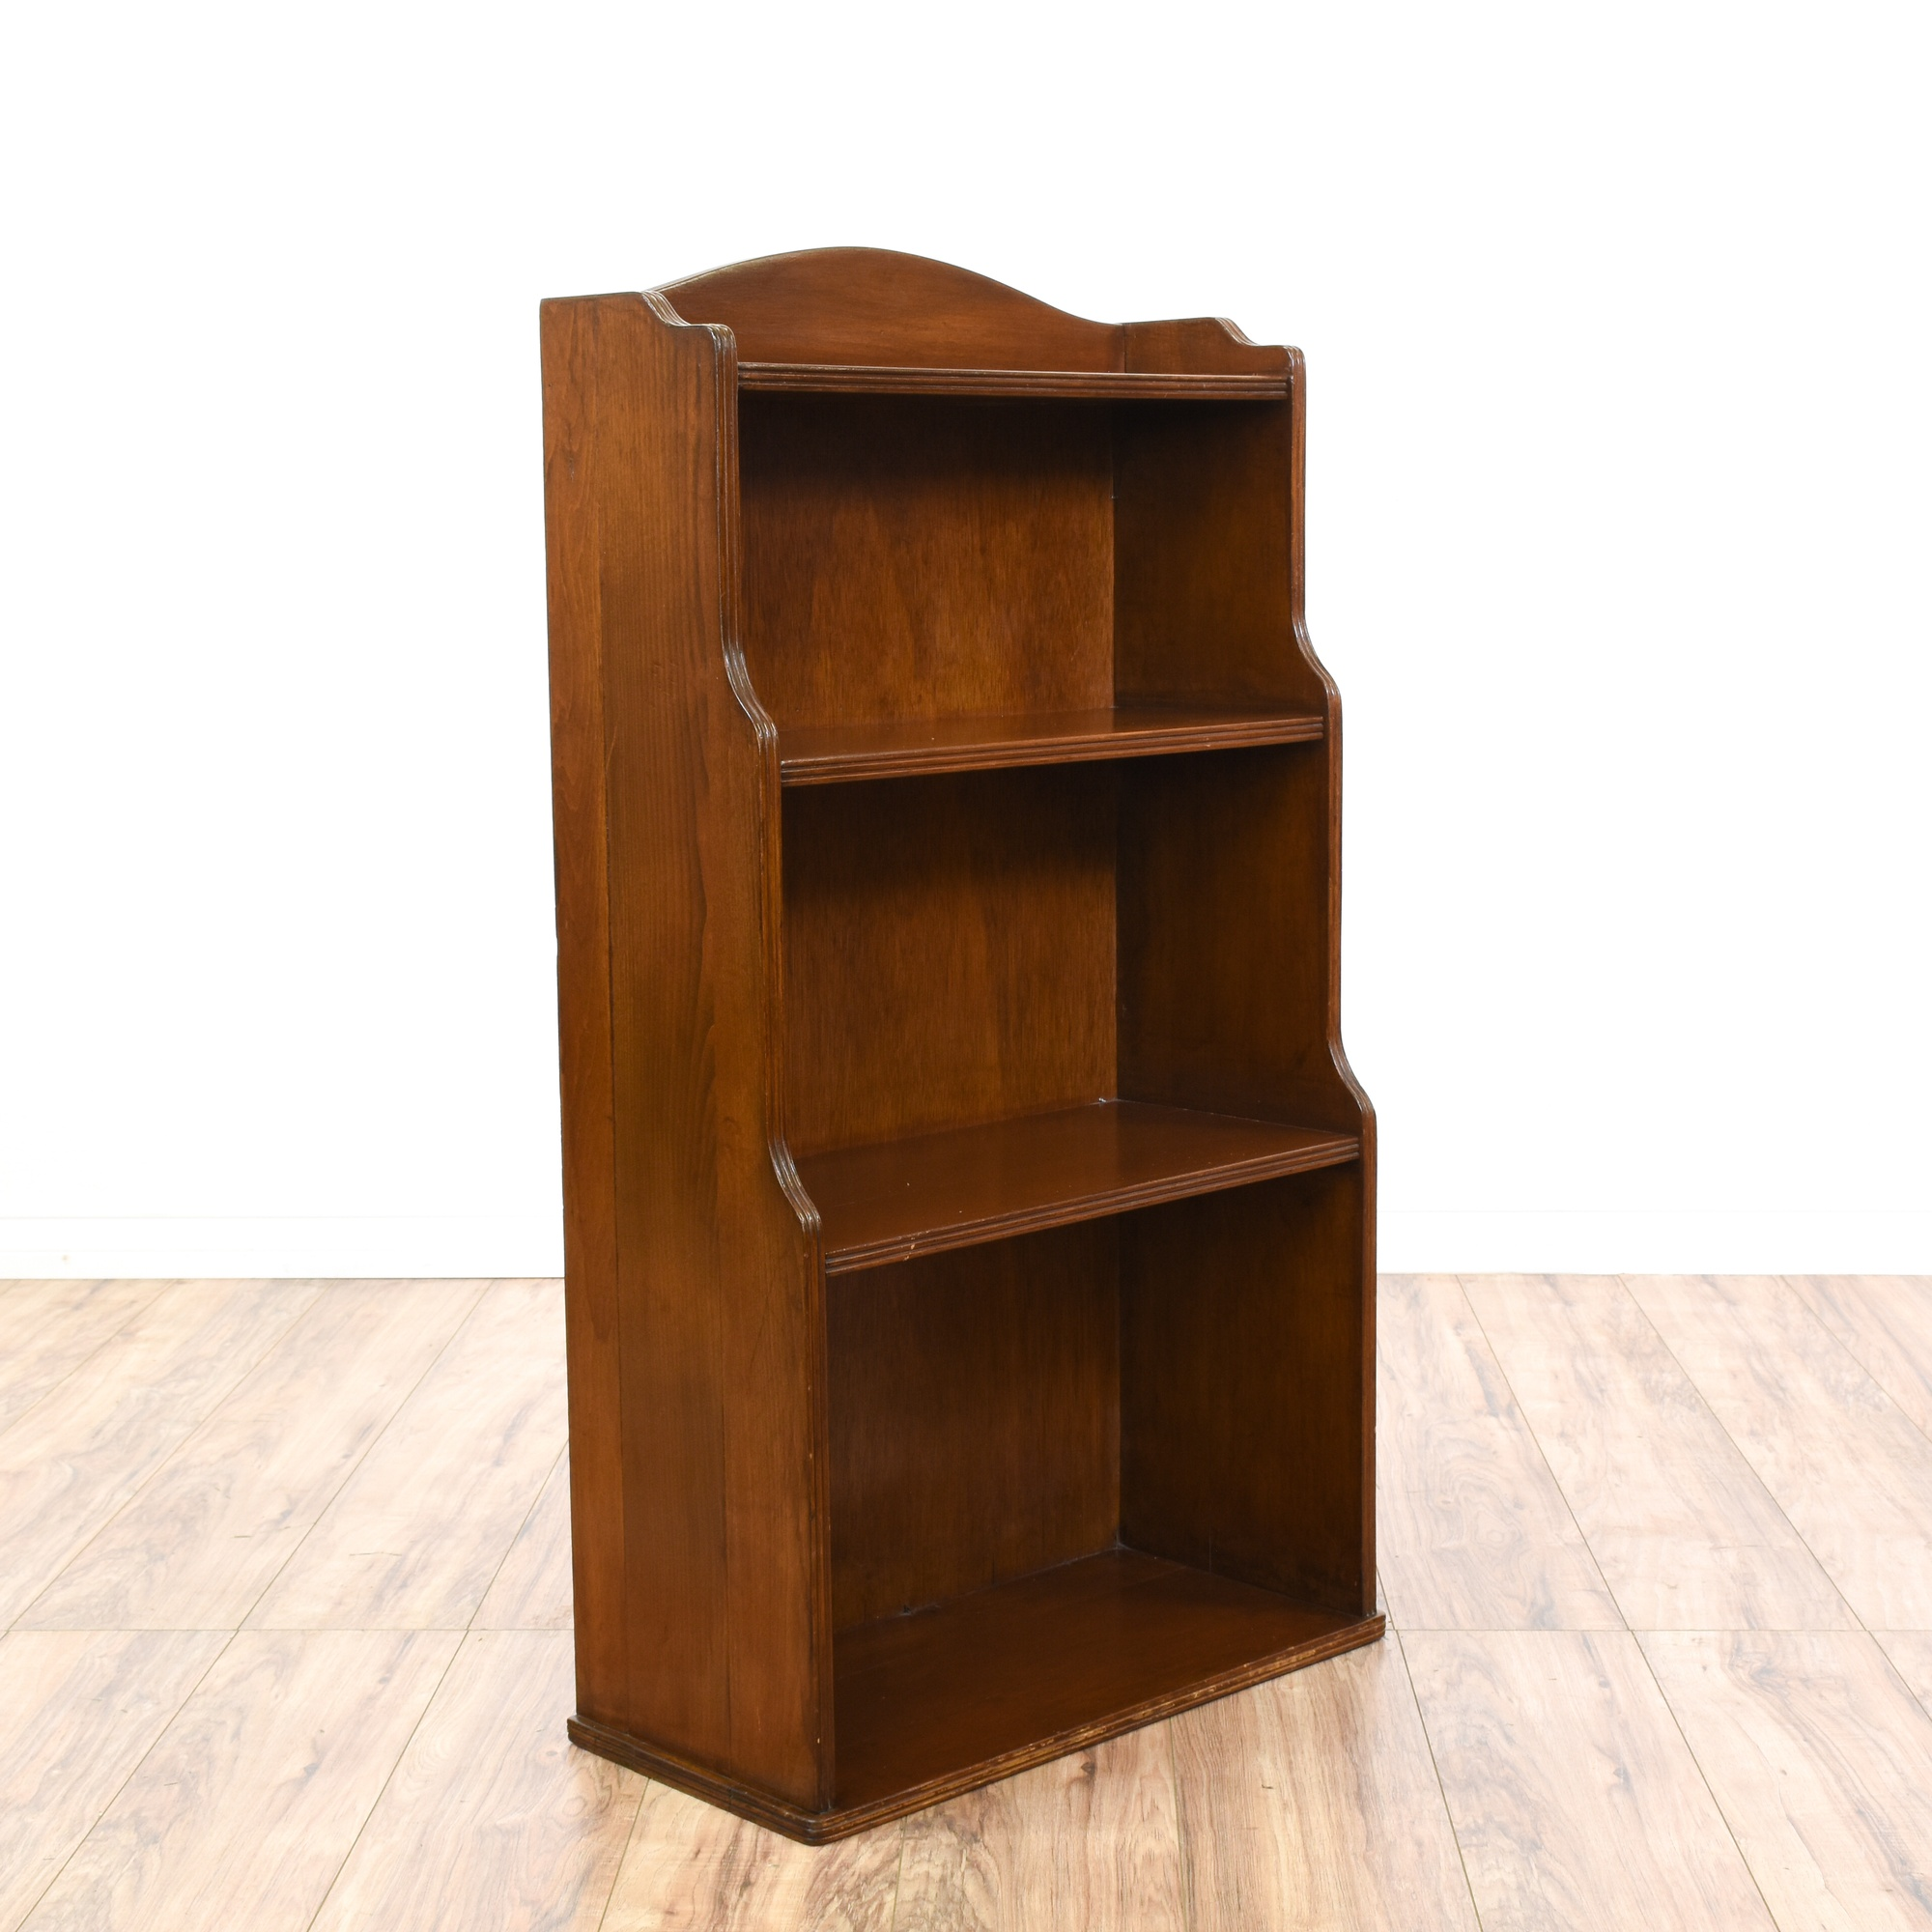 Stair Step Bookcase small cherry stair step bookcase | loveseat vintage furniture san